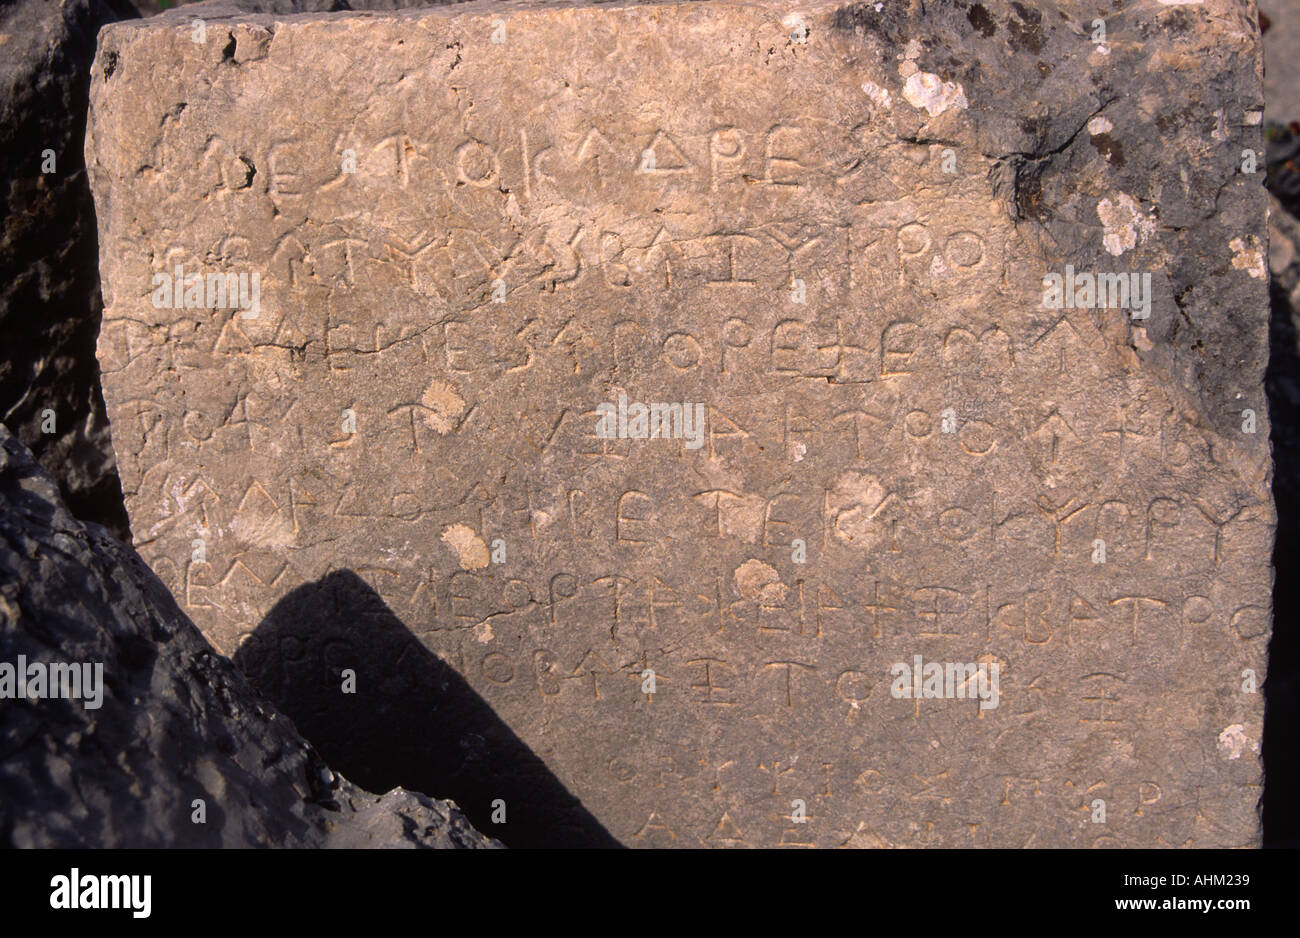 Ancient Greek writing carved on stone Tlos Turkey - Stock Image